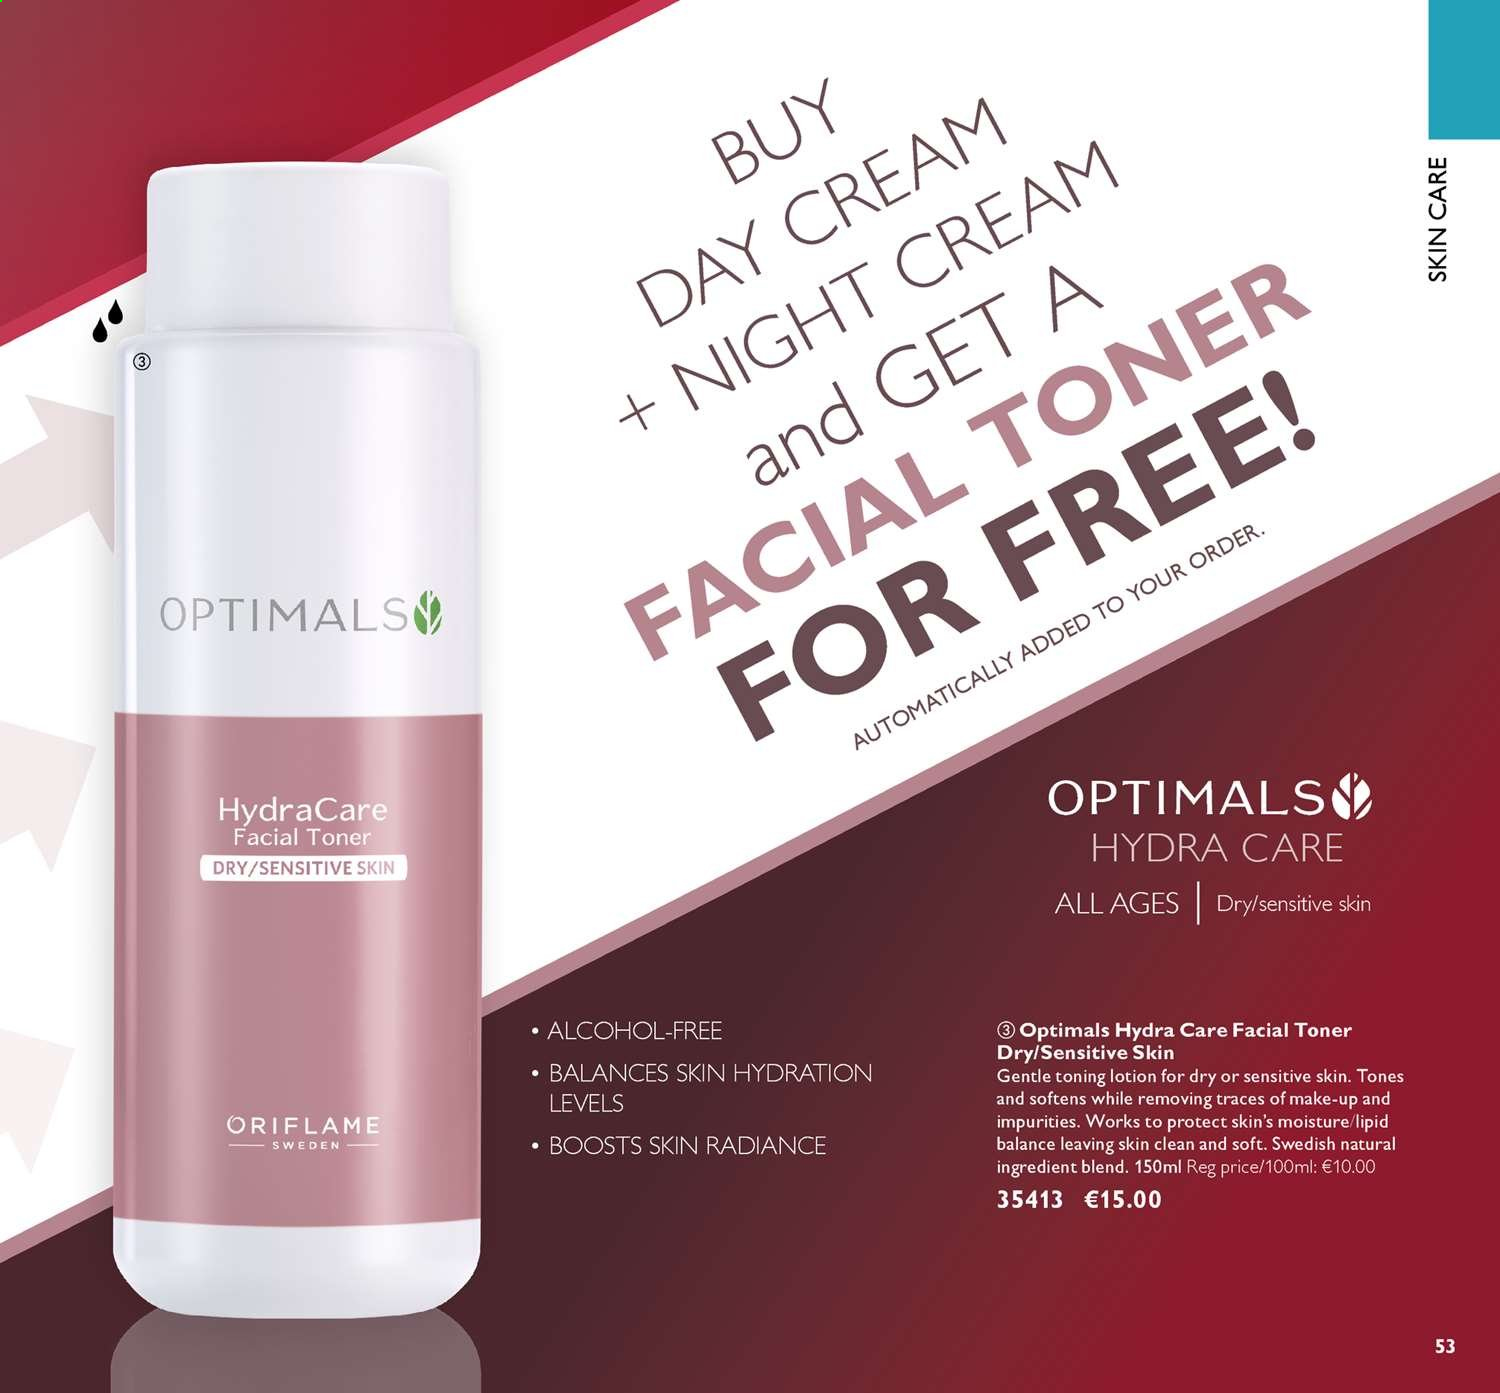 Oriflame offer  - 14.6.2019 - 4.7.2019 - Sales products - cream, day cream, makeup, moisture, toner, night cream. Page 53.